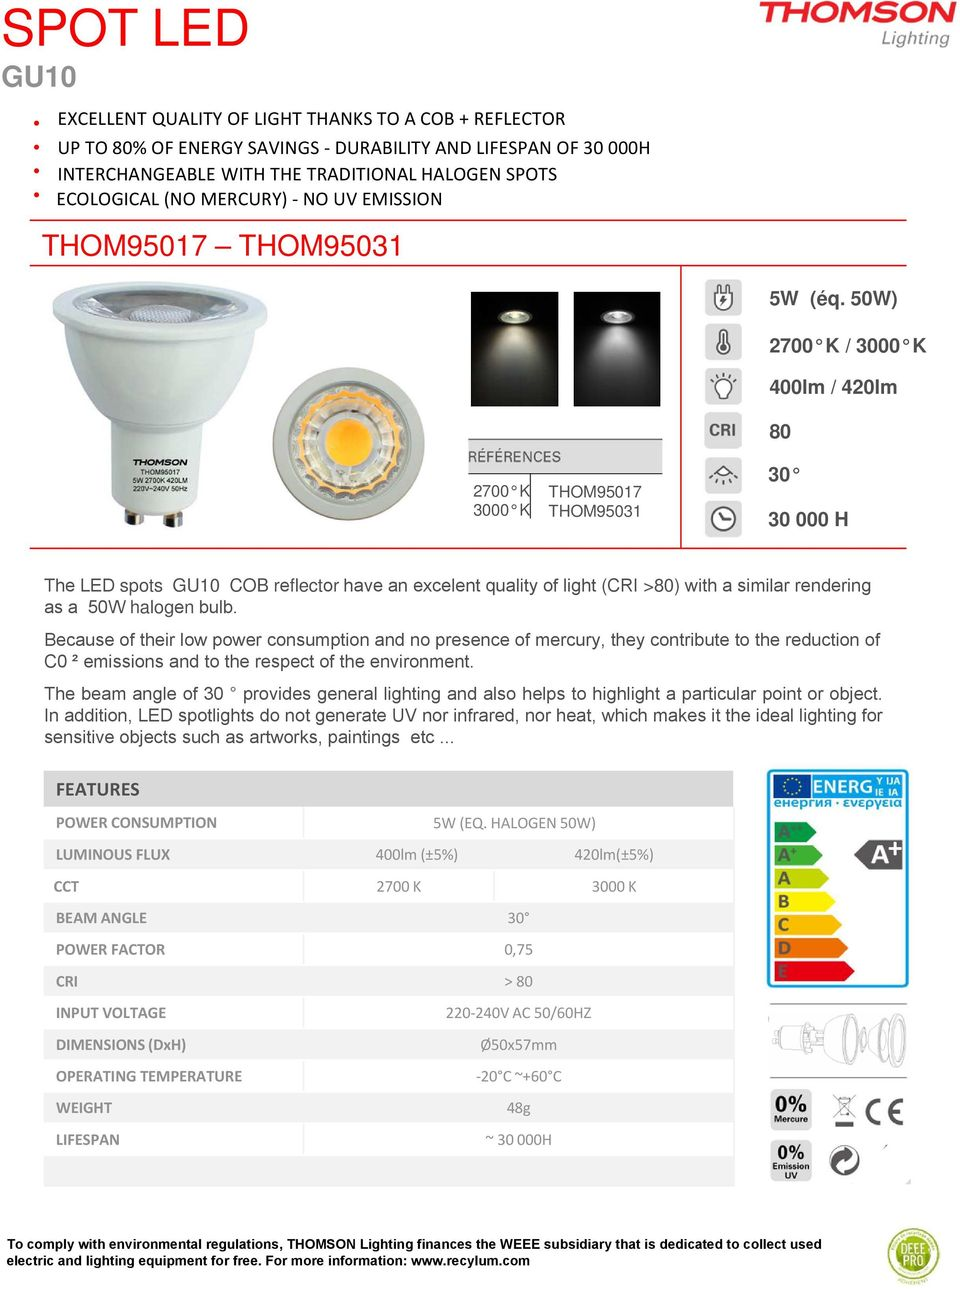 Table Of Contents Thomson Values Lighting Product Led Driver Powers Halogen Replacement 50w 2700 K 3000 400lm 420lm 80 30 000 H The